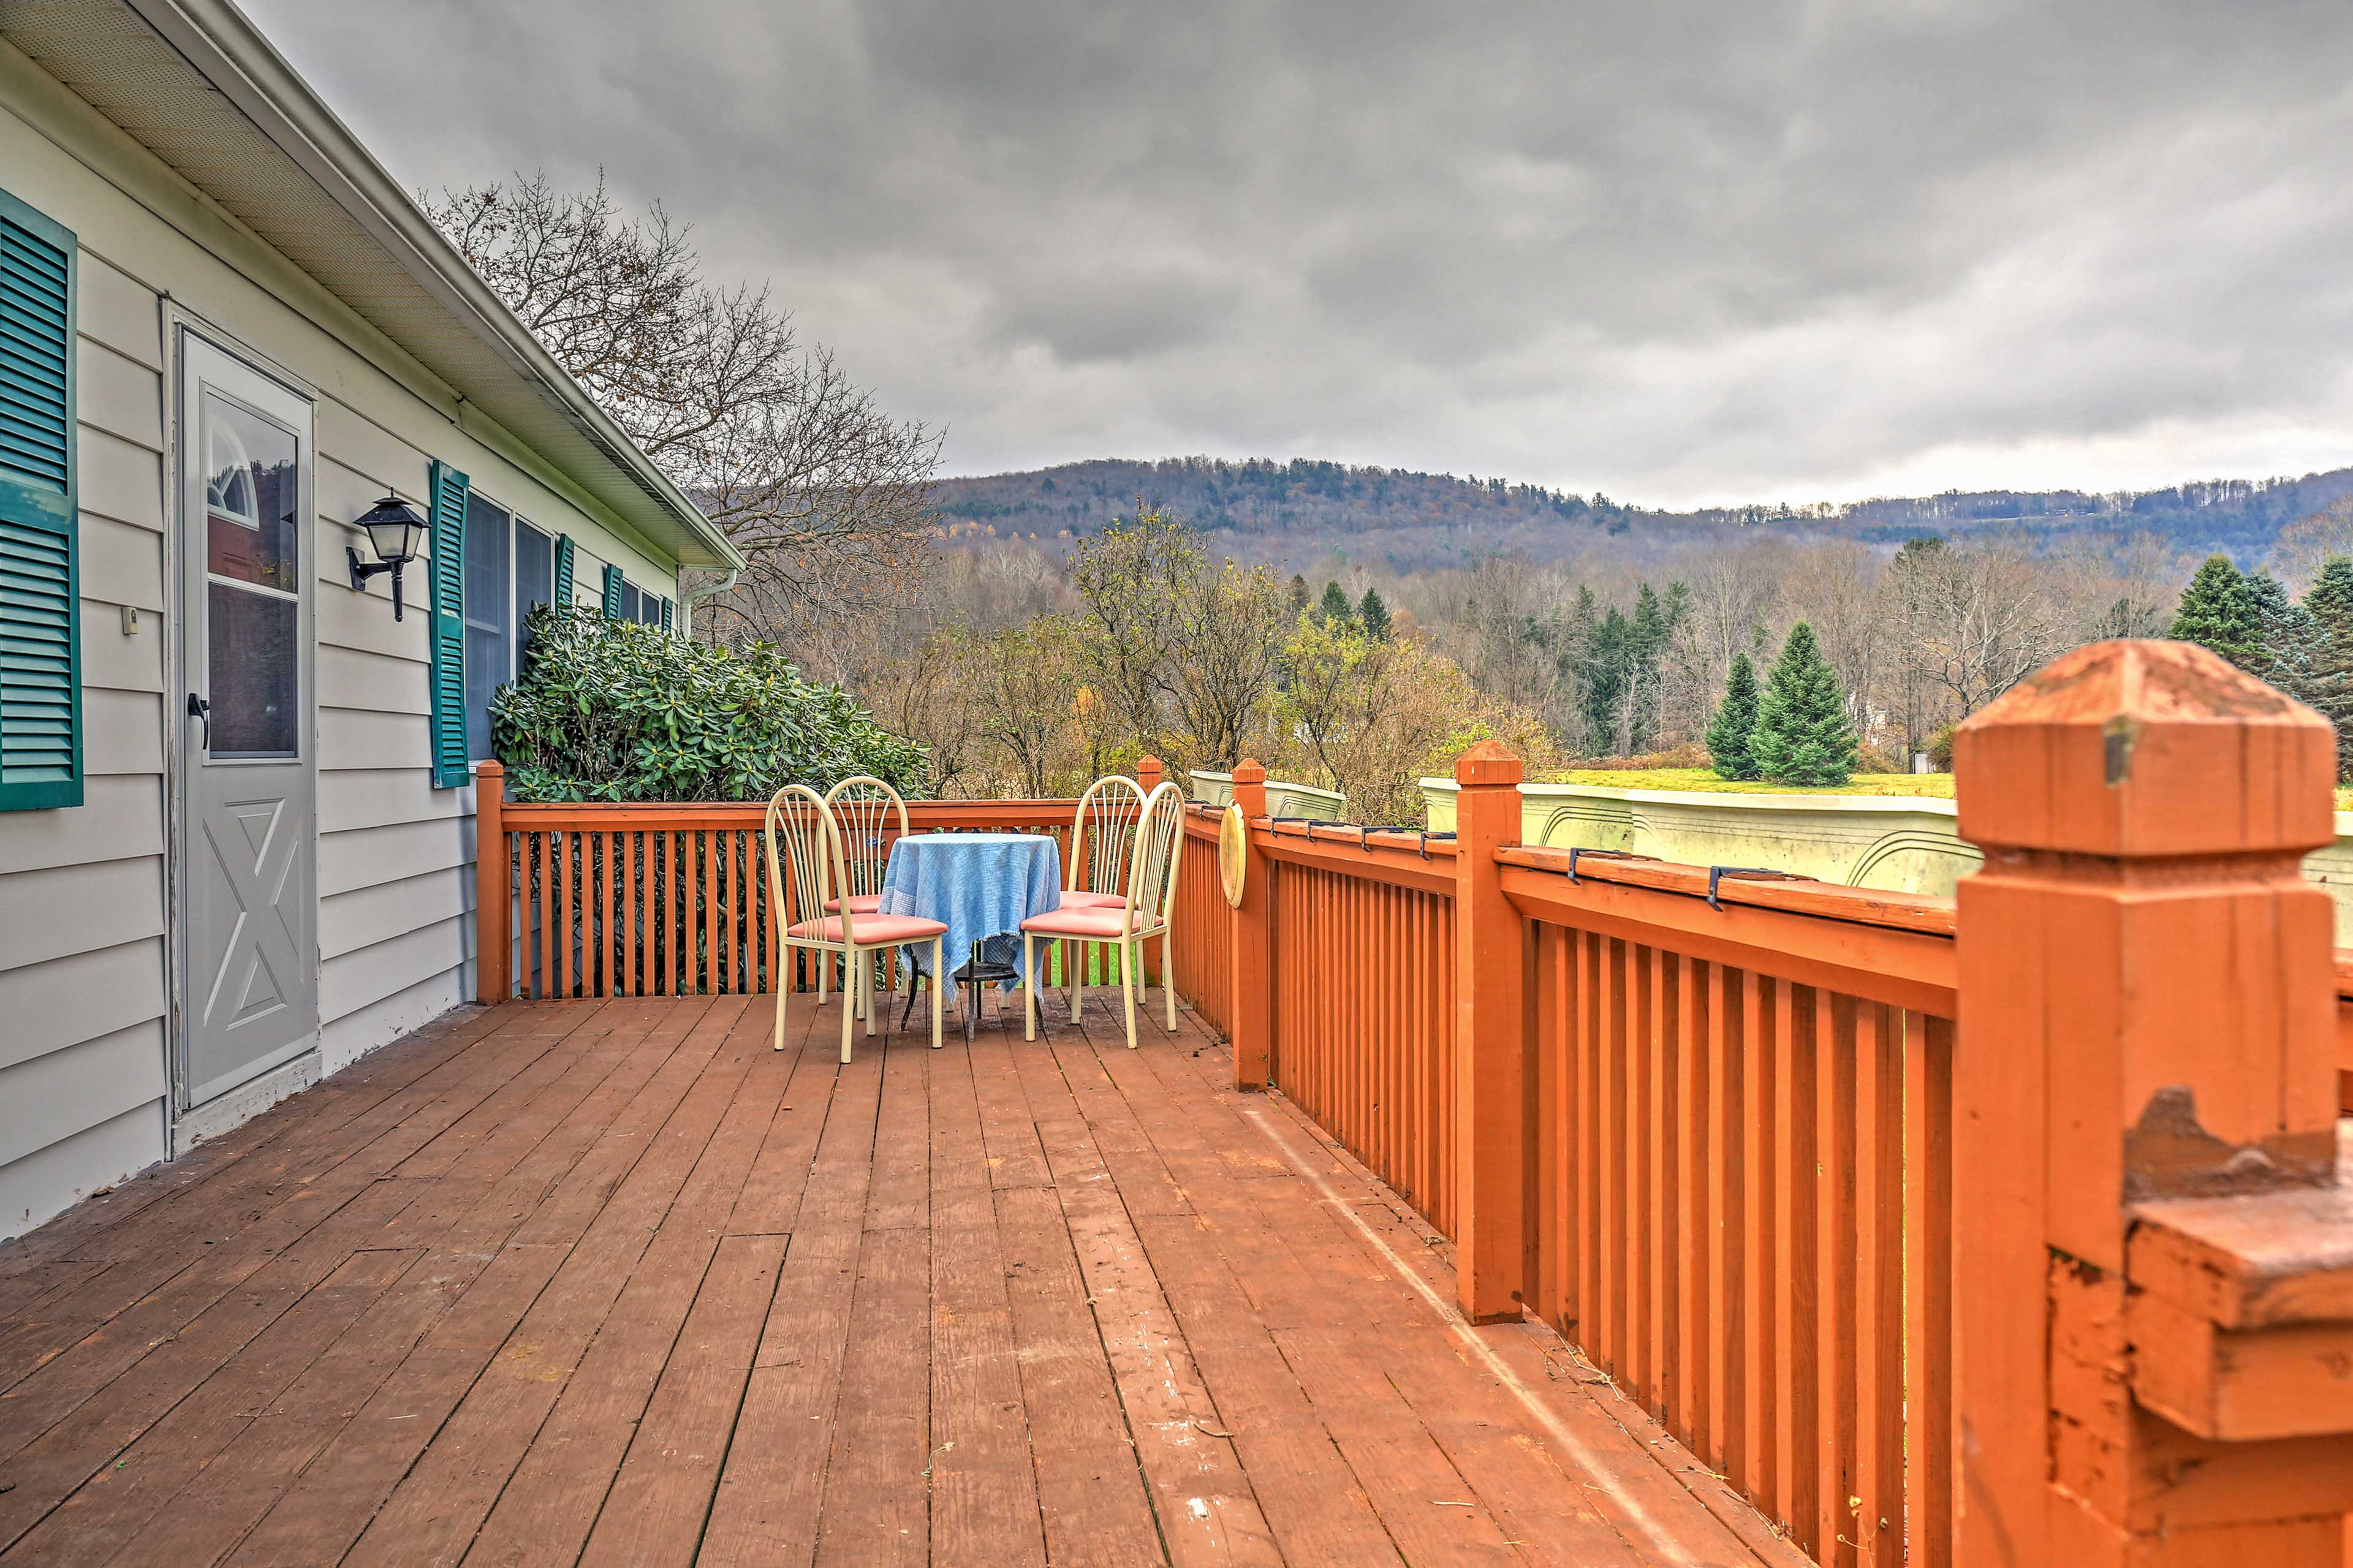 A rejuvenating retreat awaits you at this peaceful Otego vacation rental home!